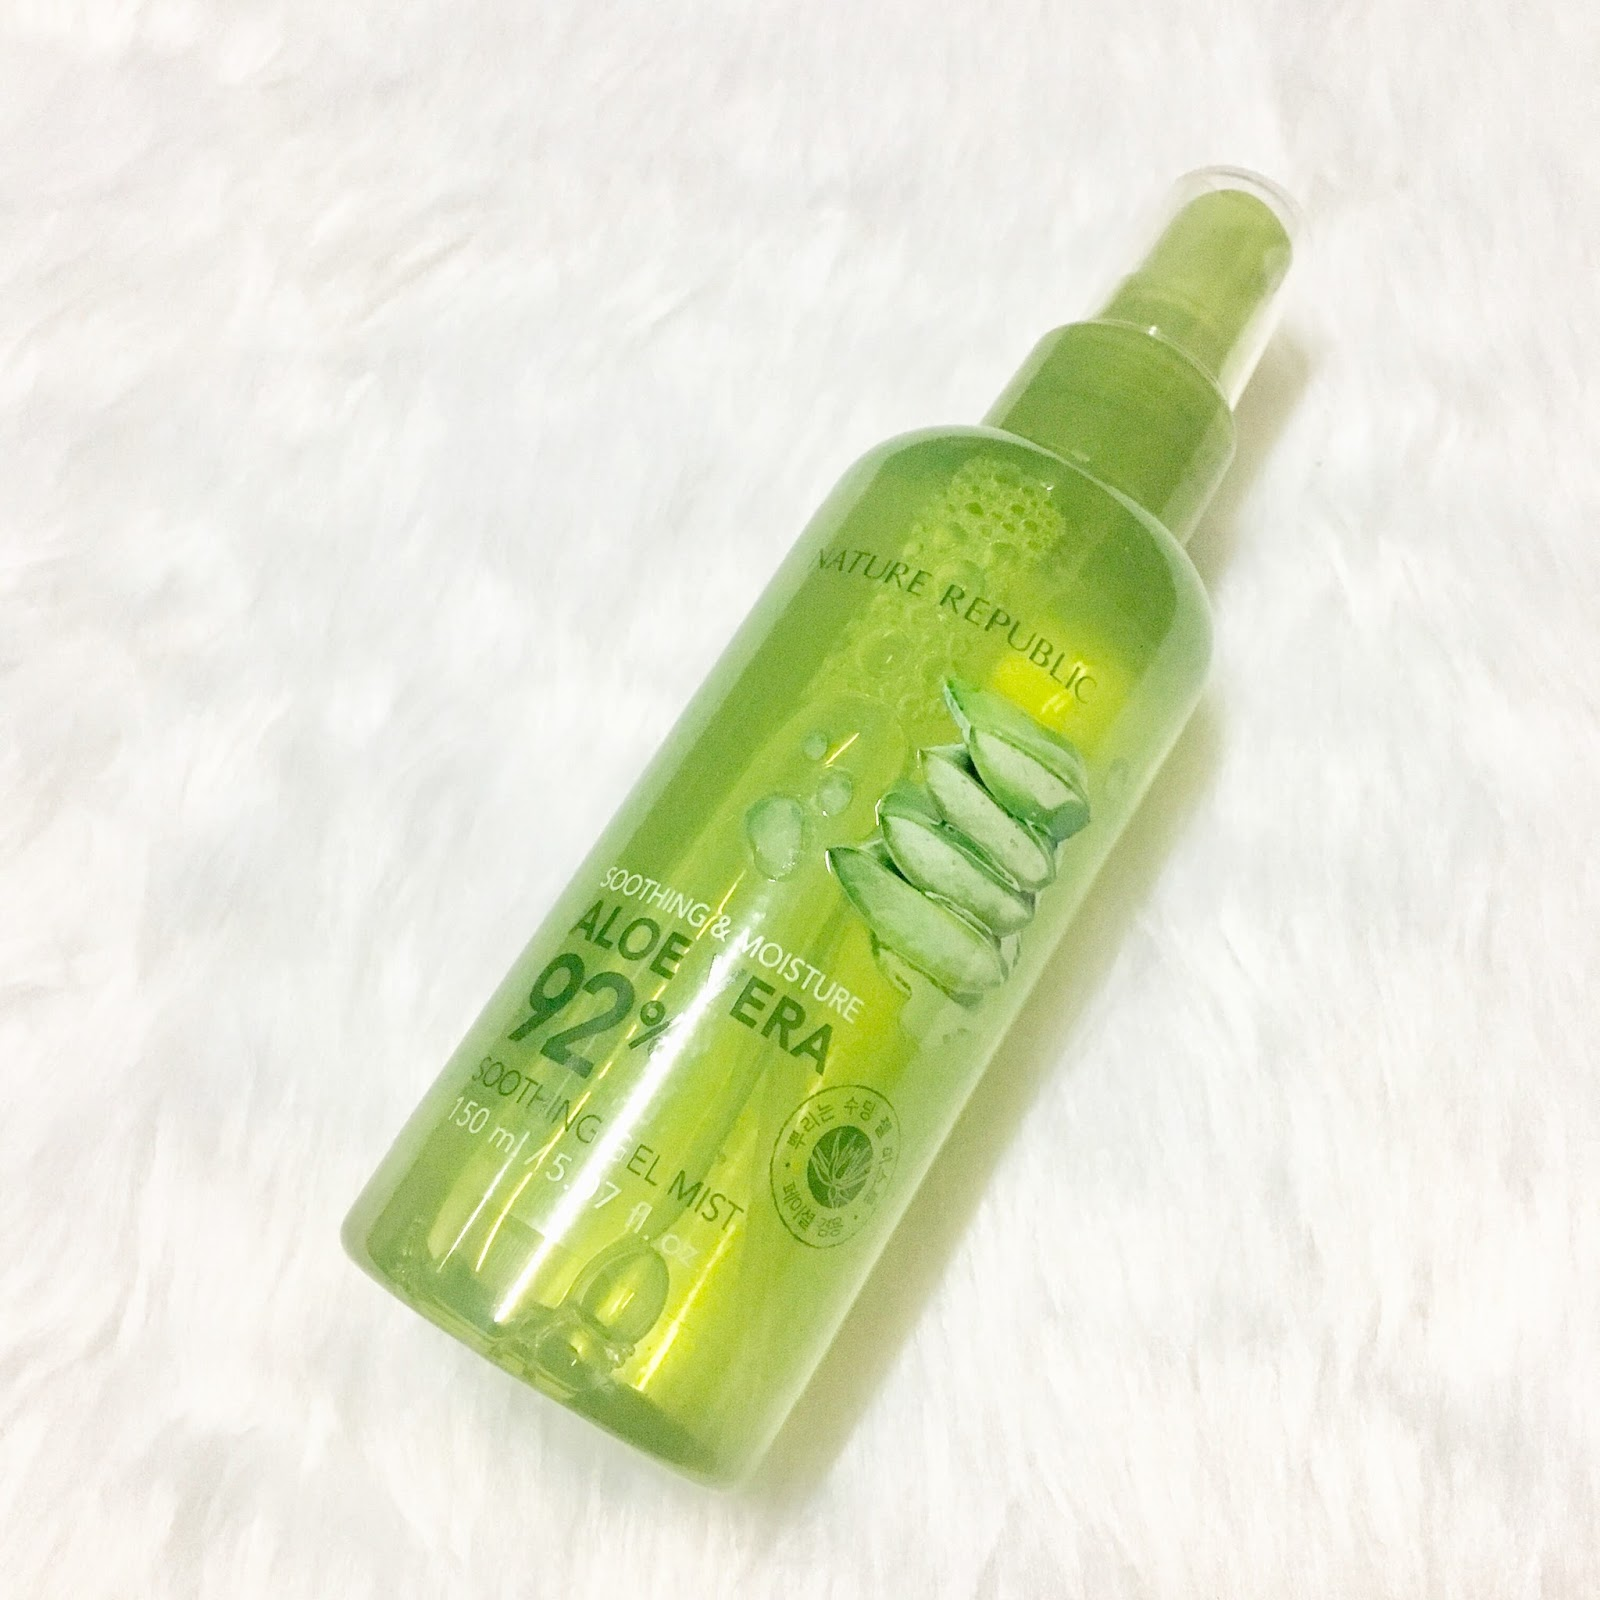 April 2018 The Lazy Orlov Nature Republic Mist Spray Soothing Gel Aloe Vera Original Review 92